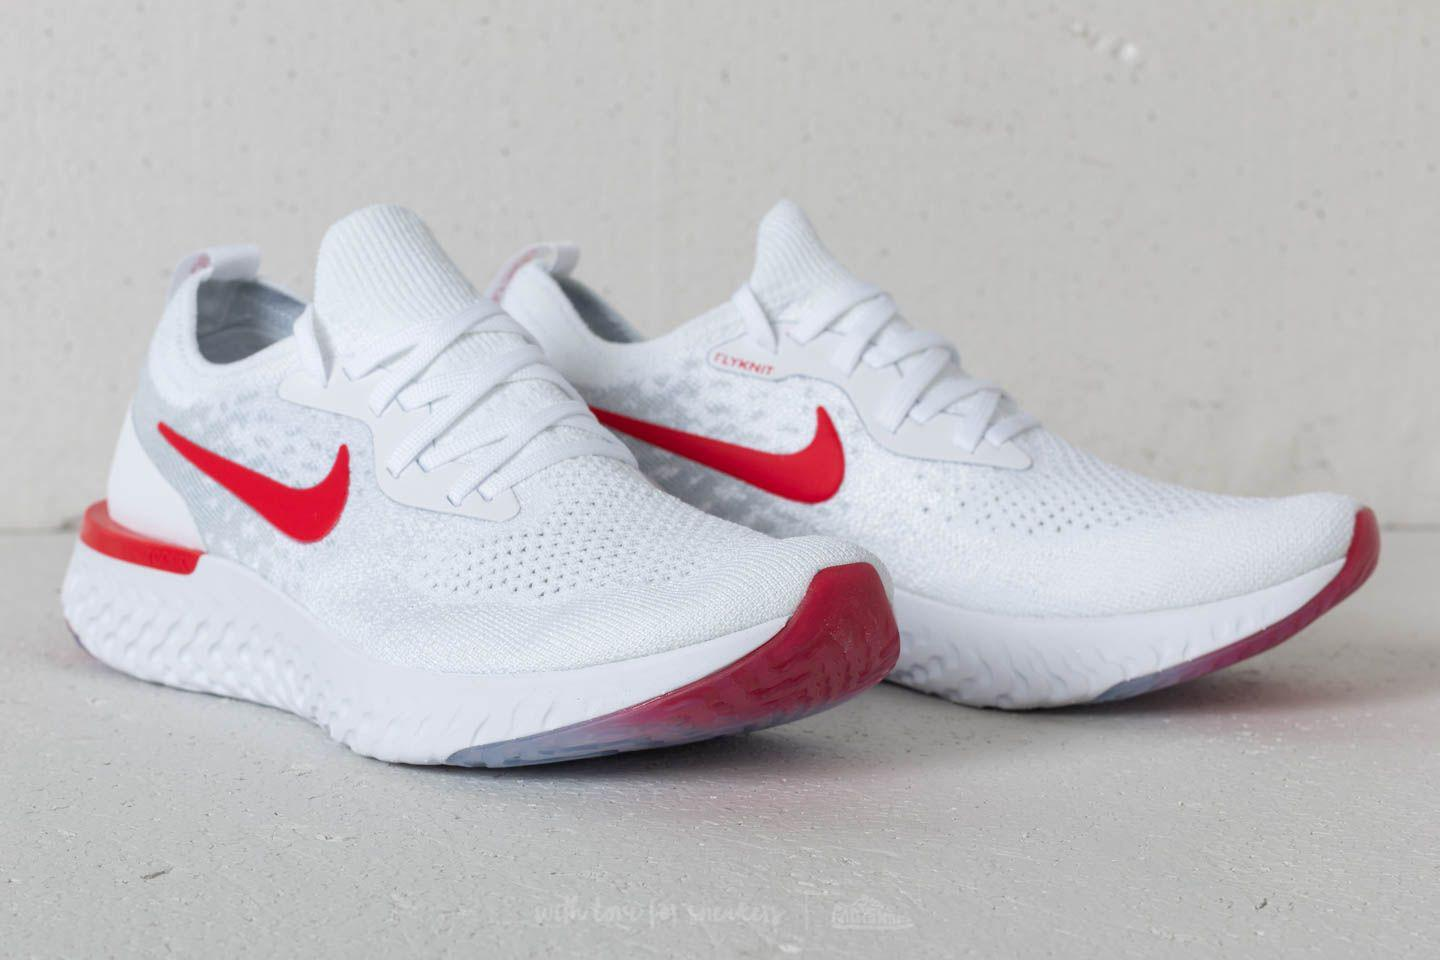 7cad2f8f4b37 Lyst - Nike Epic React Flyknit (gs) White  University Red in White ...